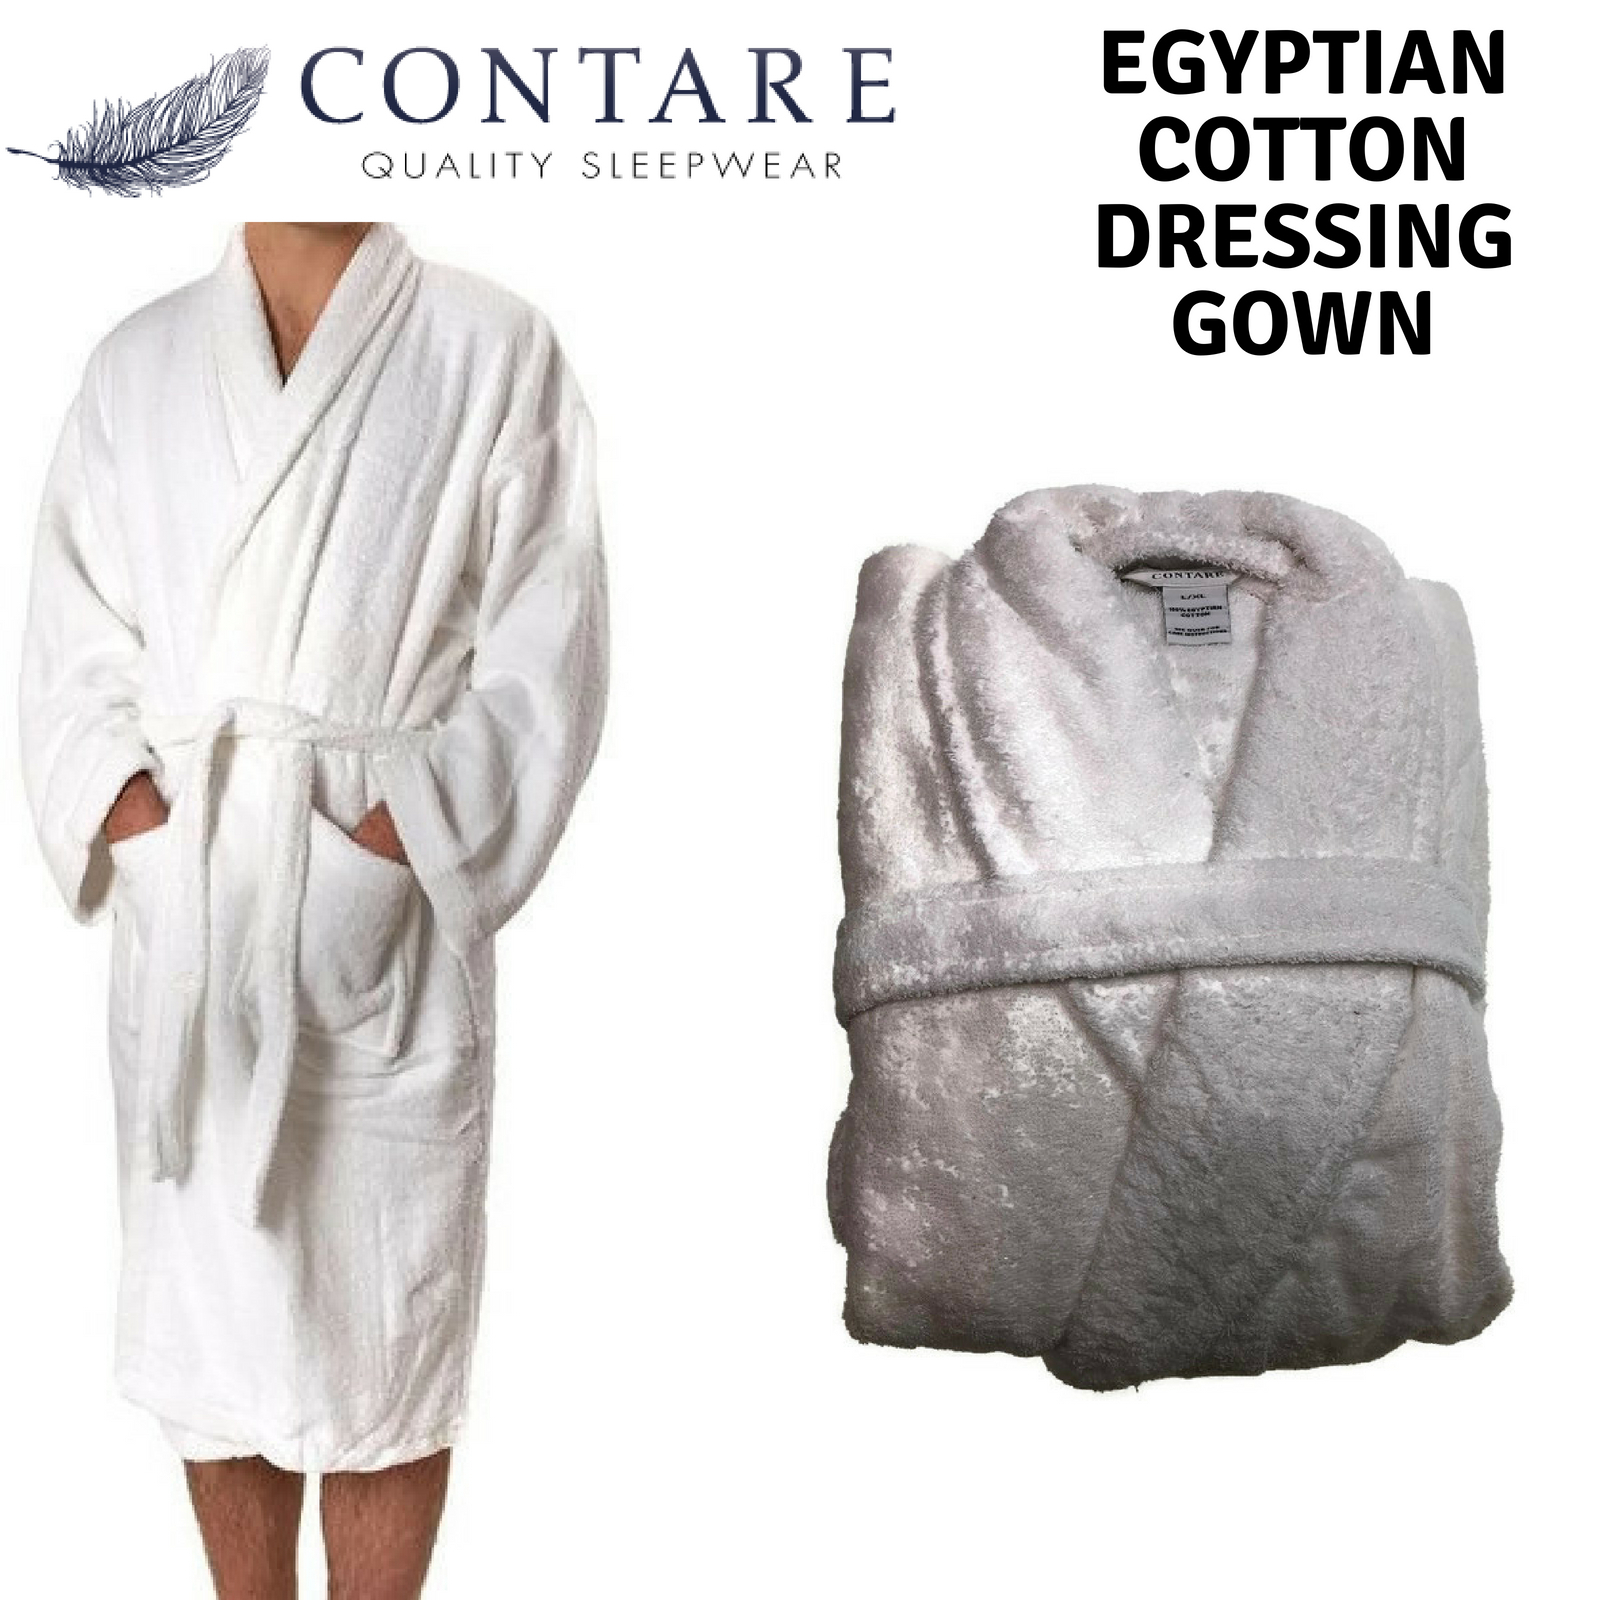 CONTARE 100% Egyptian Cotton Dressing Gown Bath Robe Terry Towelling ...